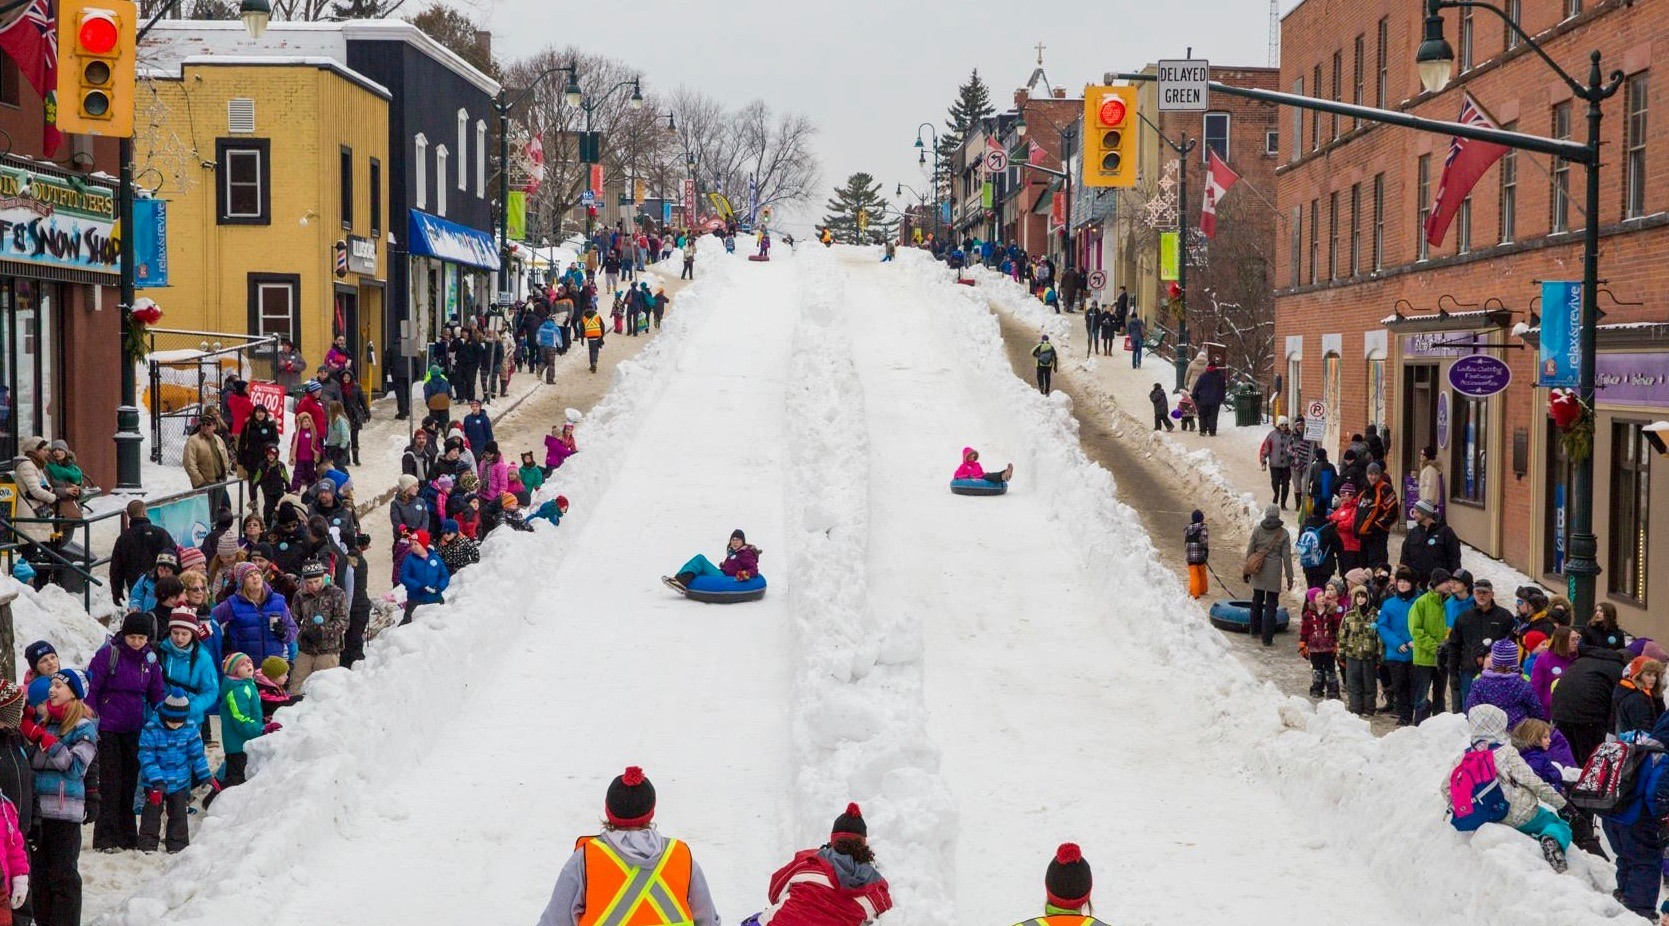 This town 2 hours from Toronto knows how to throw a proper winter festival